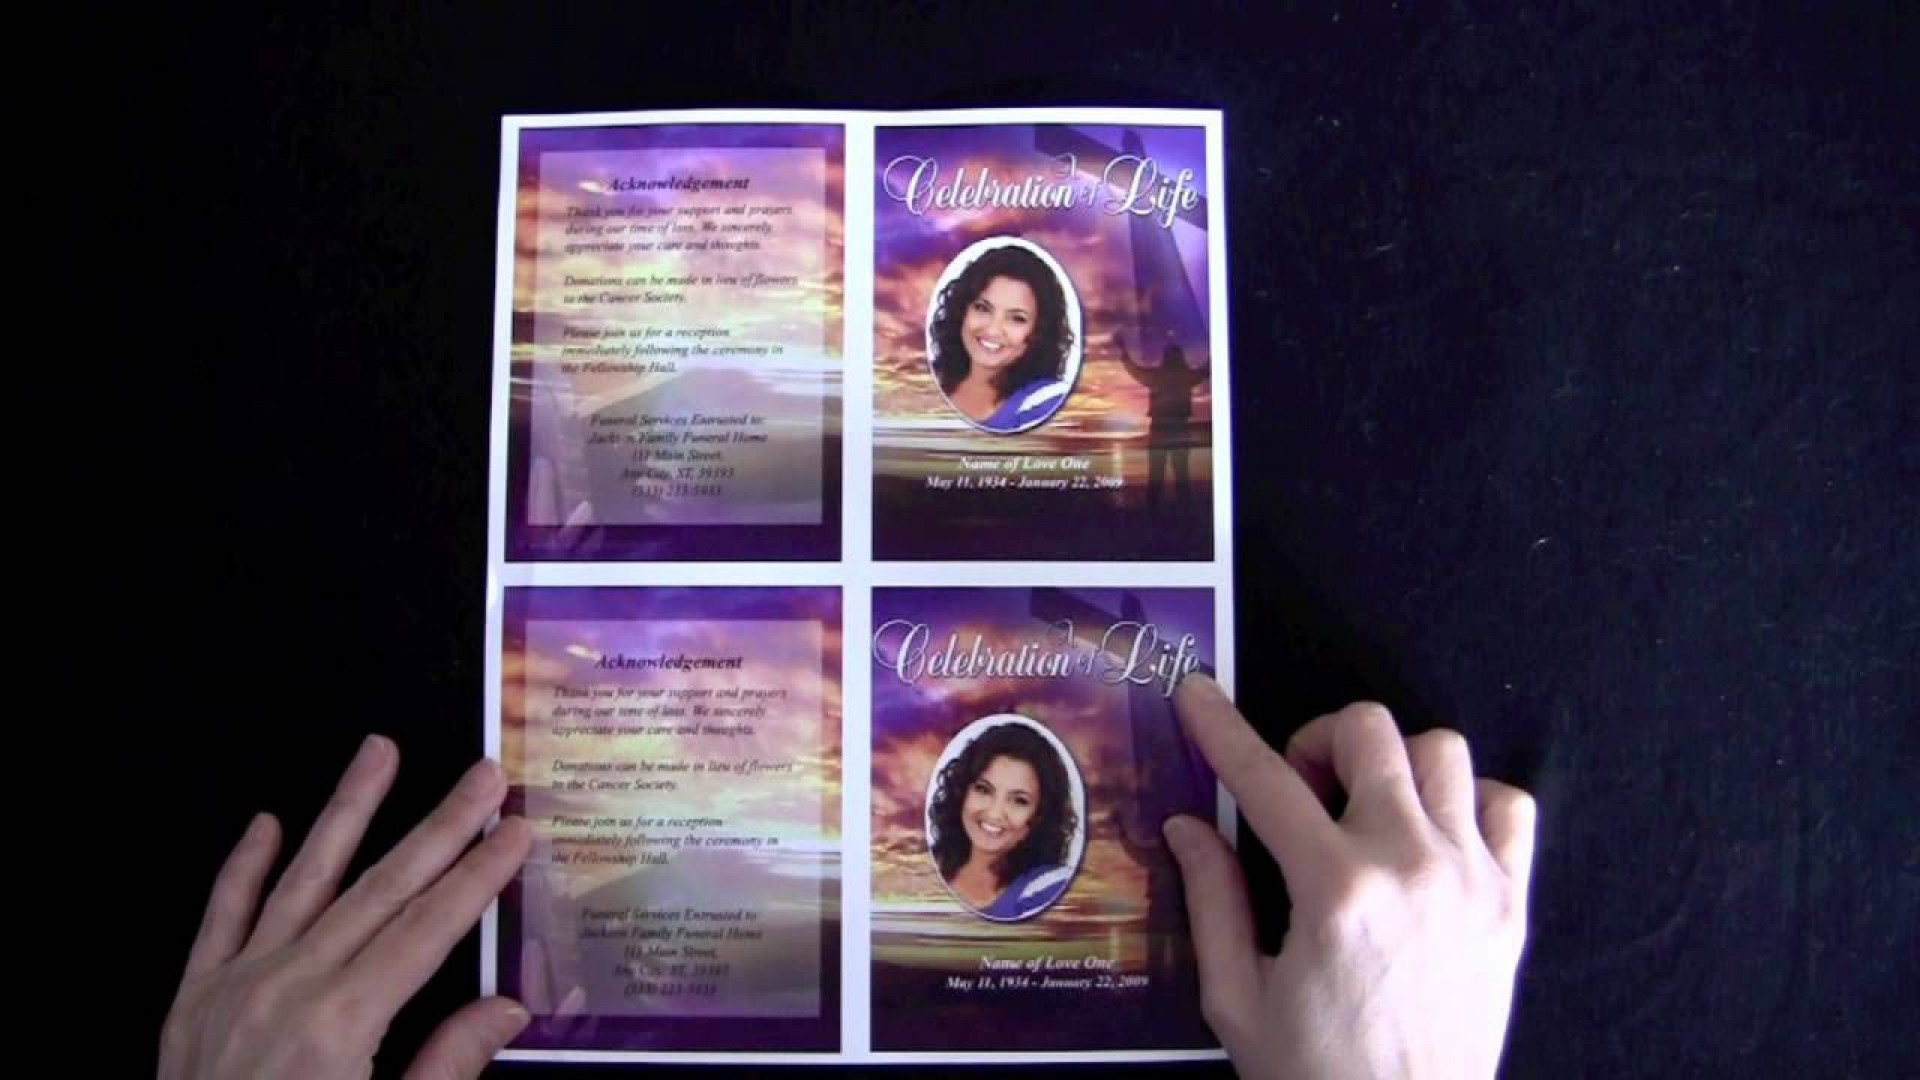 008 Dreaded Memorial Card Template Free Download Inspiration 1920